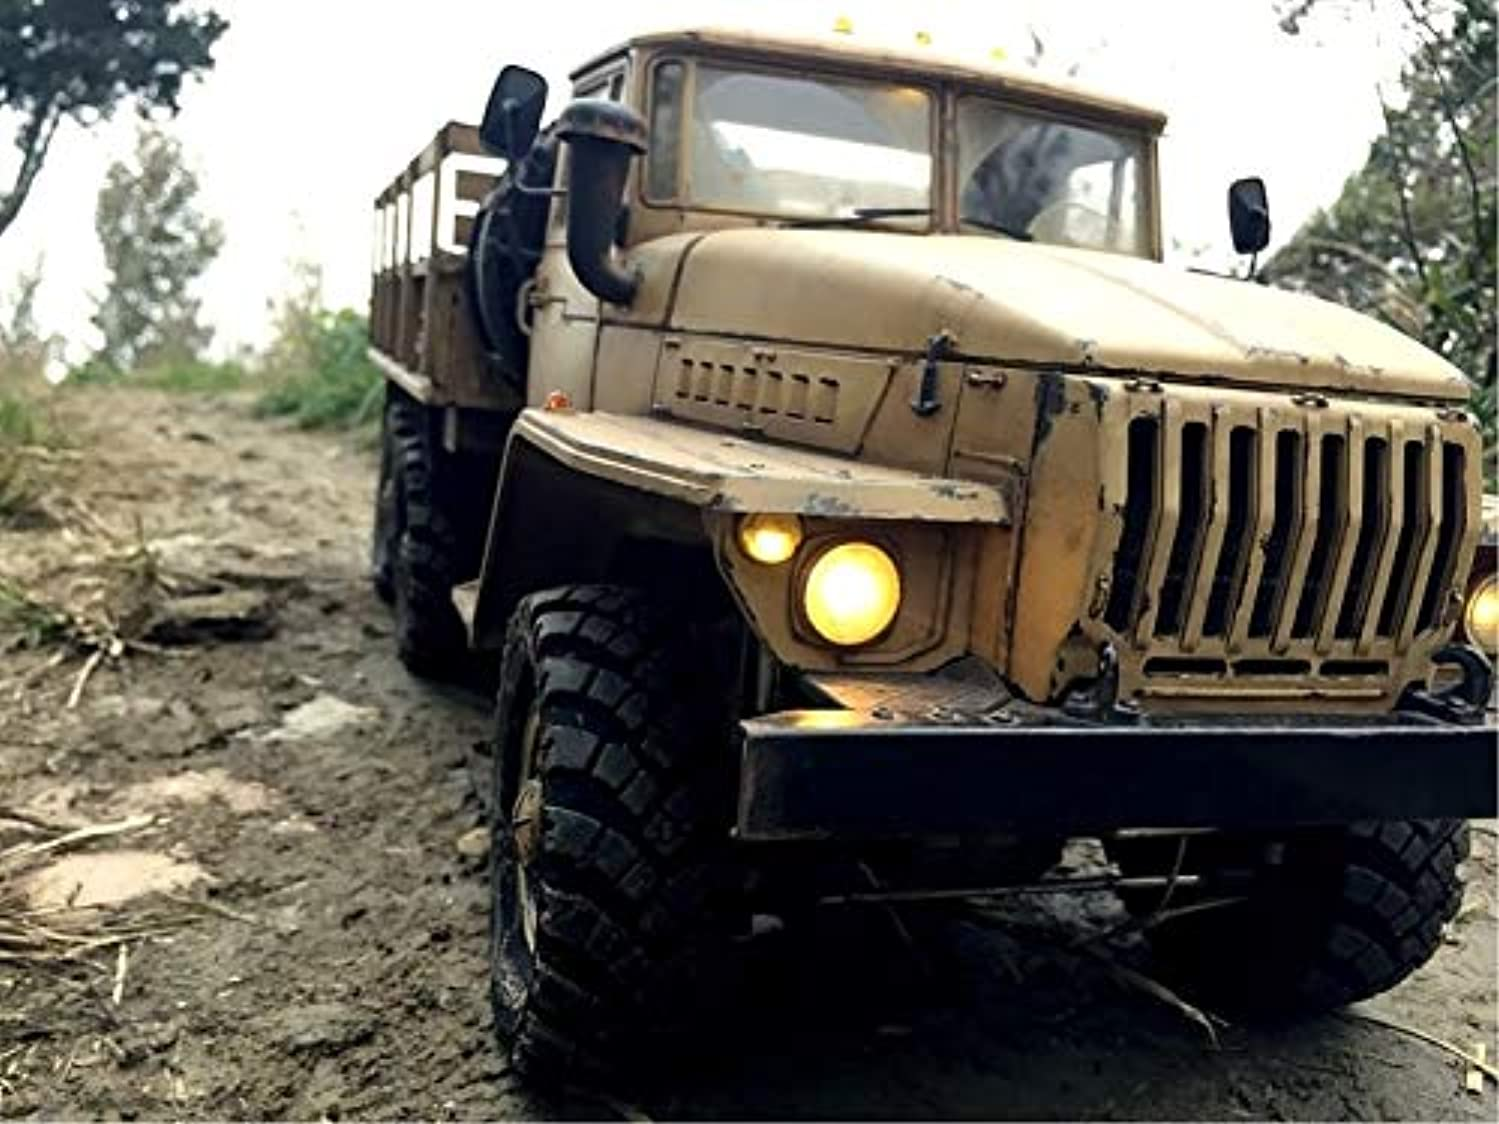 1/10 Scale Shinnied Cross UCC6 Off-Road Military Vehicles 6x6 Rock Crawler Truck Highly kit